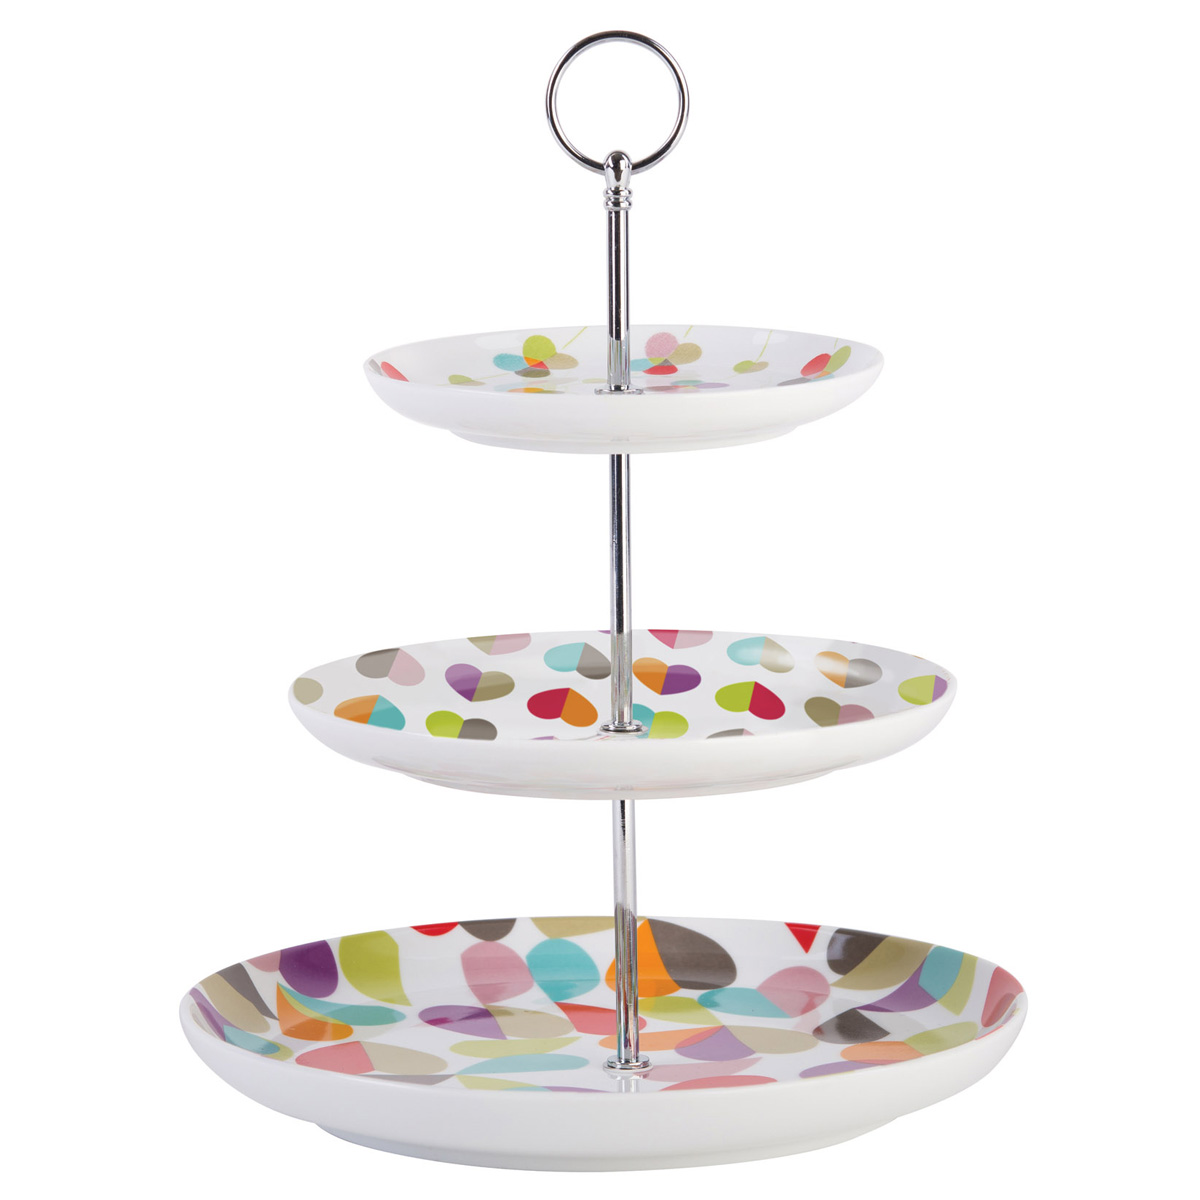 Beau & Elliot 3 Tiered Cake Stand